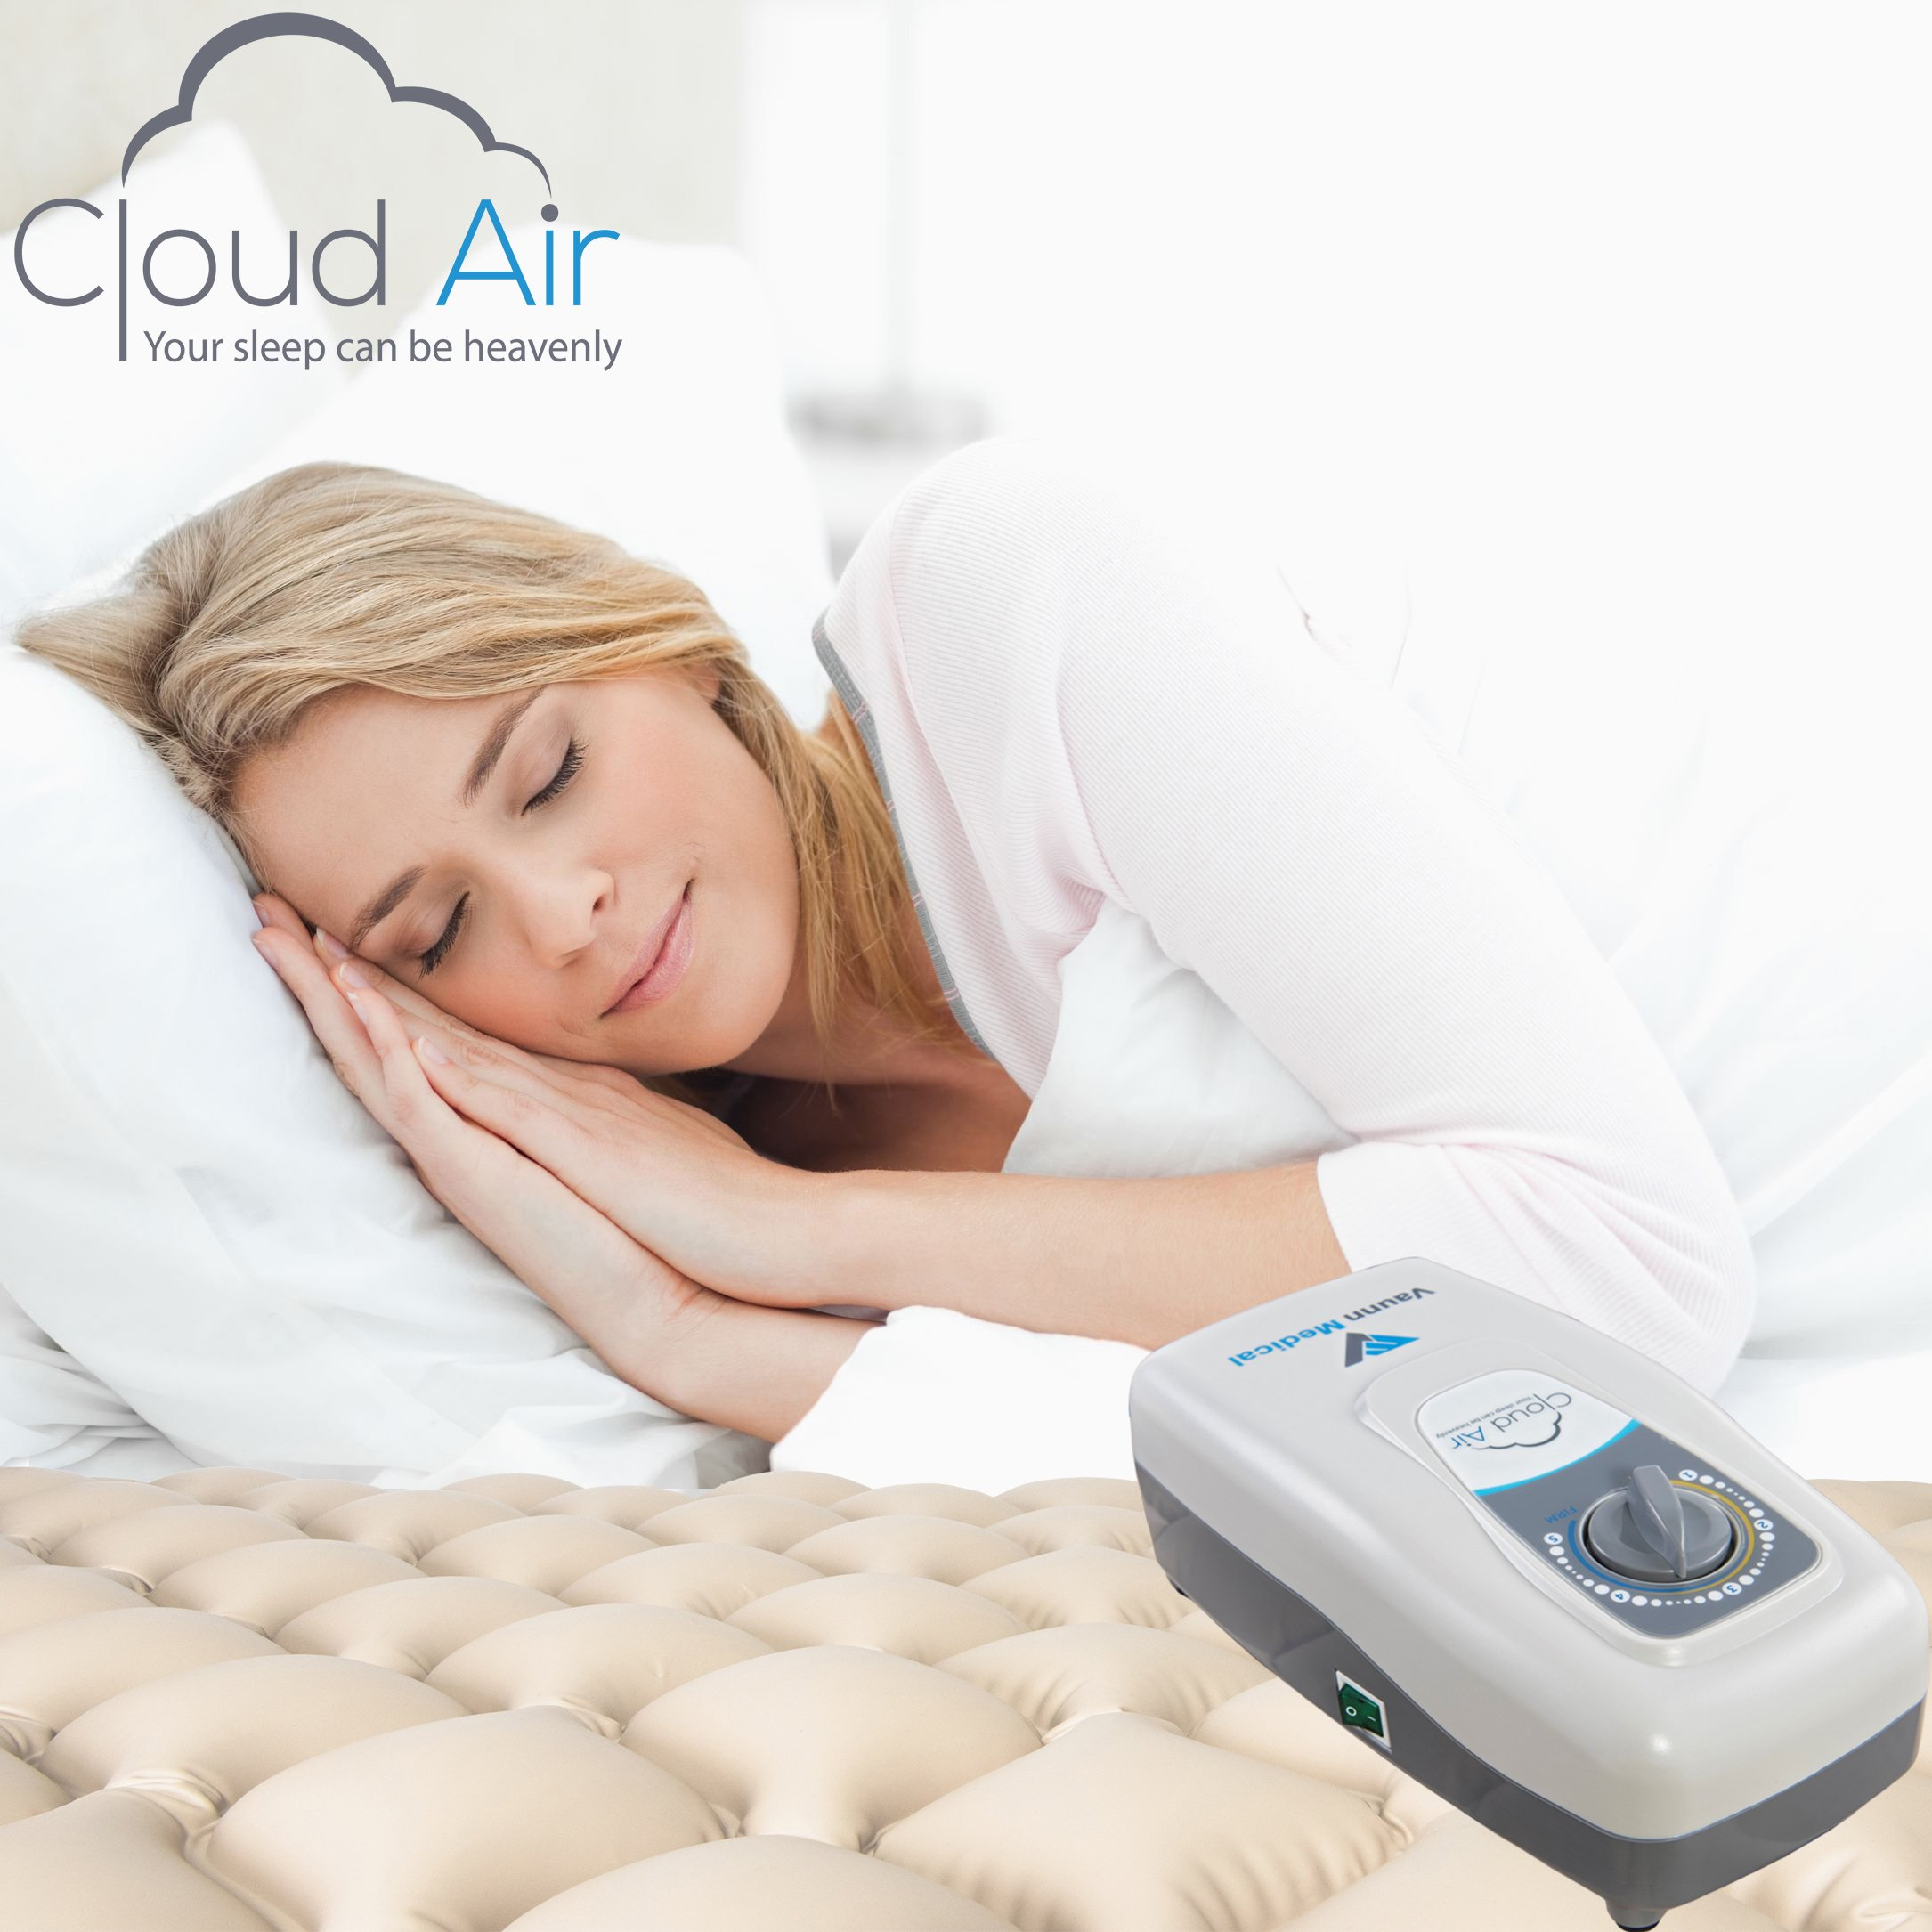 Cloud Air Whisper Quiet Alternating Air Pressure Mattress Topper with Pump